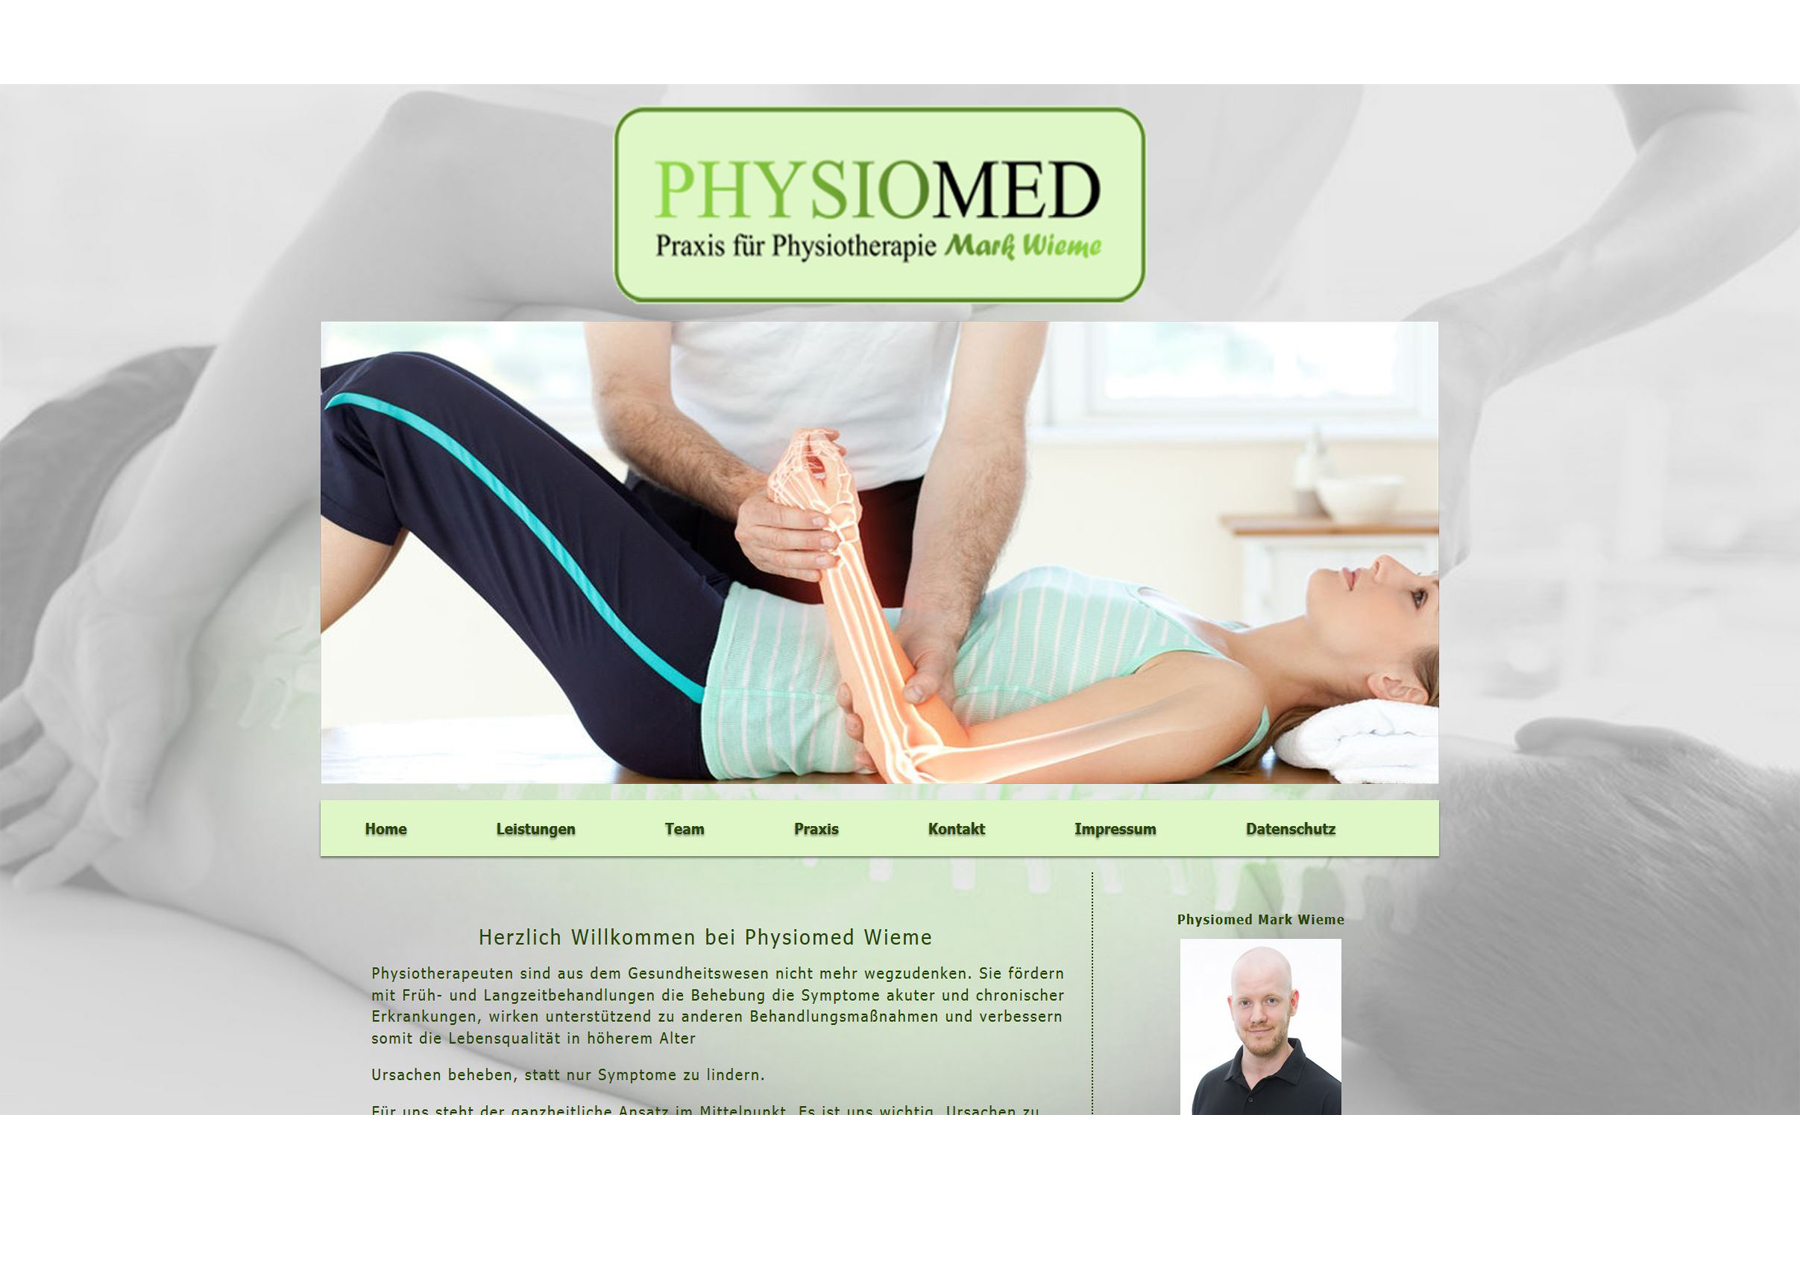 Physiomed Wieme